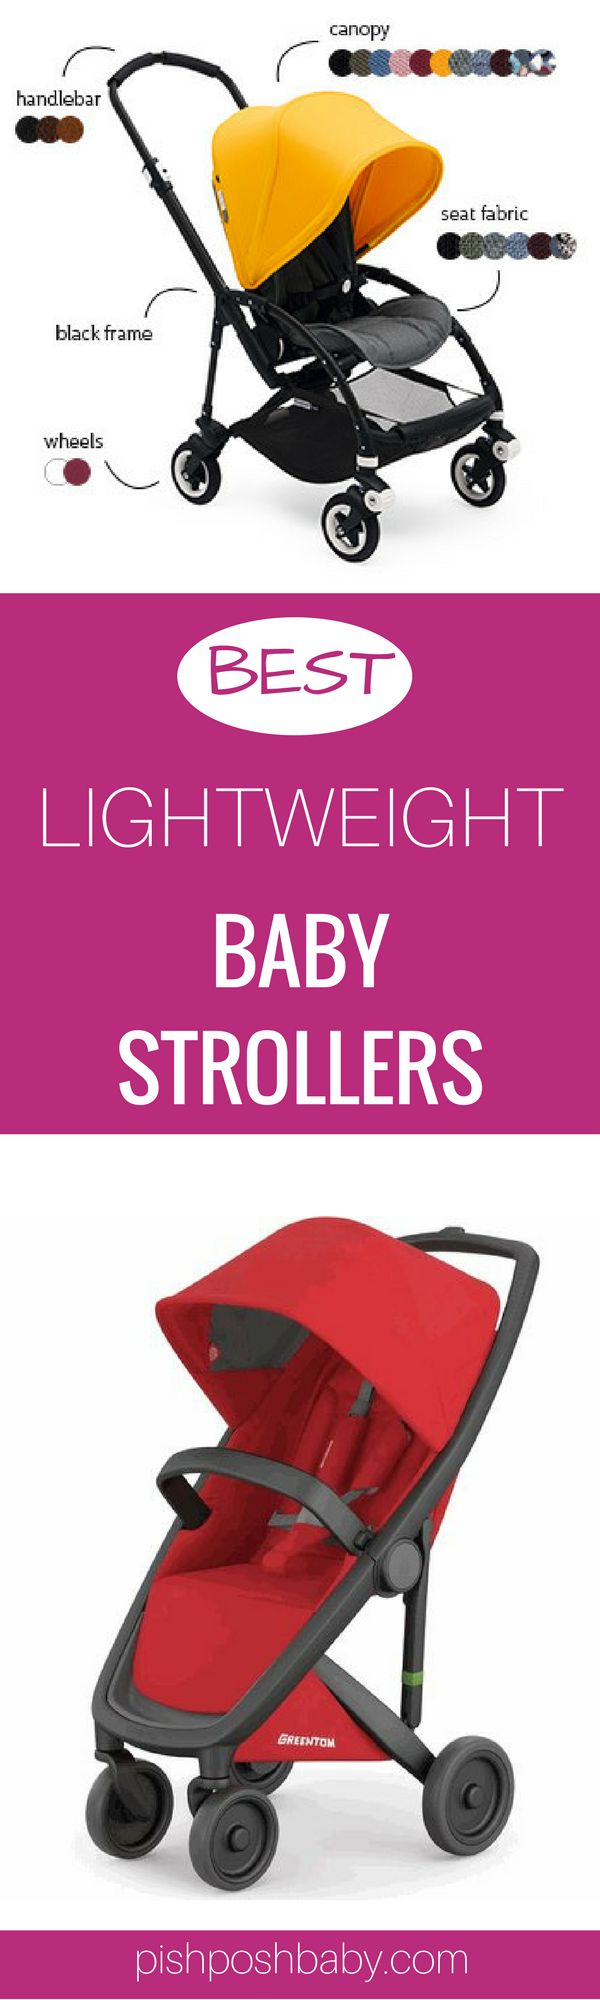 Best lightweight umbrella baby strollers | There are so many choices of light in weight strollers to choose from at pishposhbaby.com. Find cheap options as well as those high end models. You can read customer reviews and answers to most common questions about given models. {Ad}